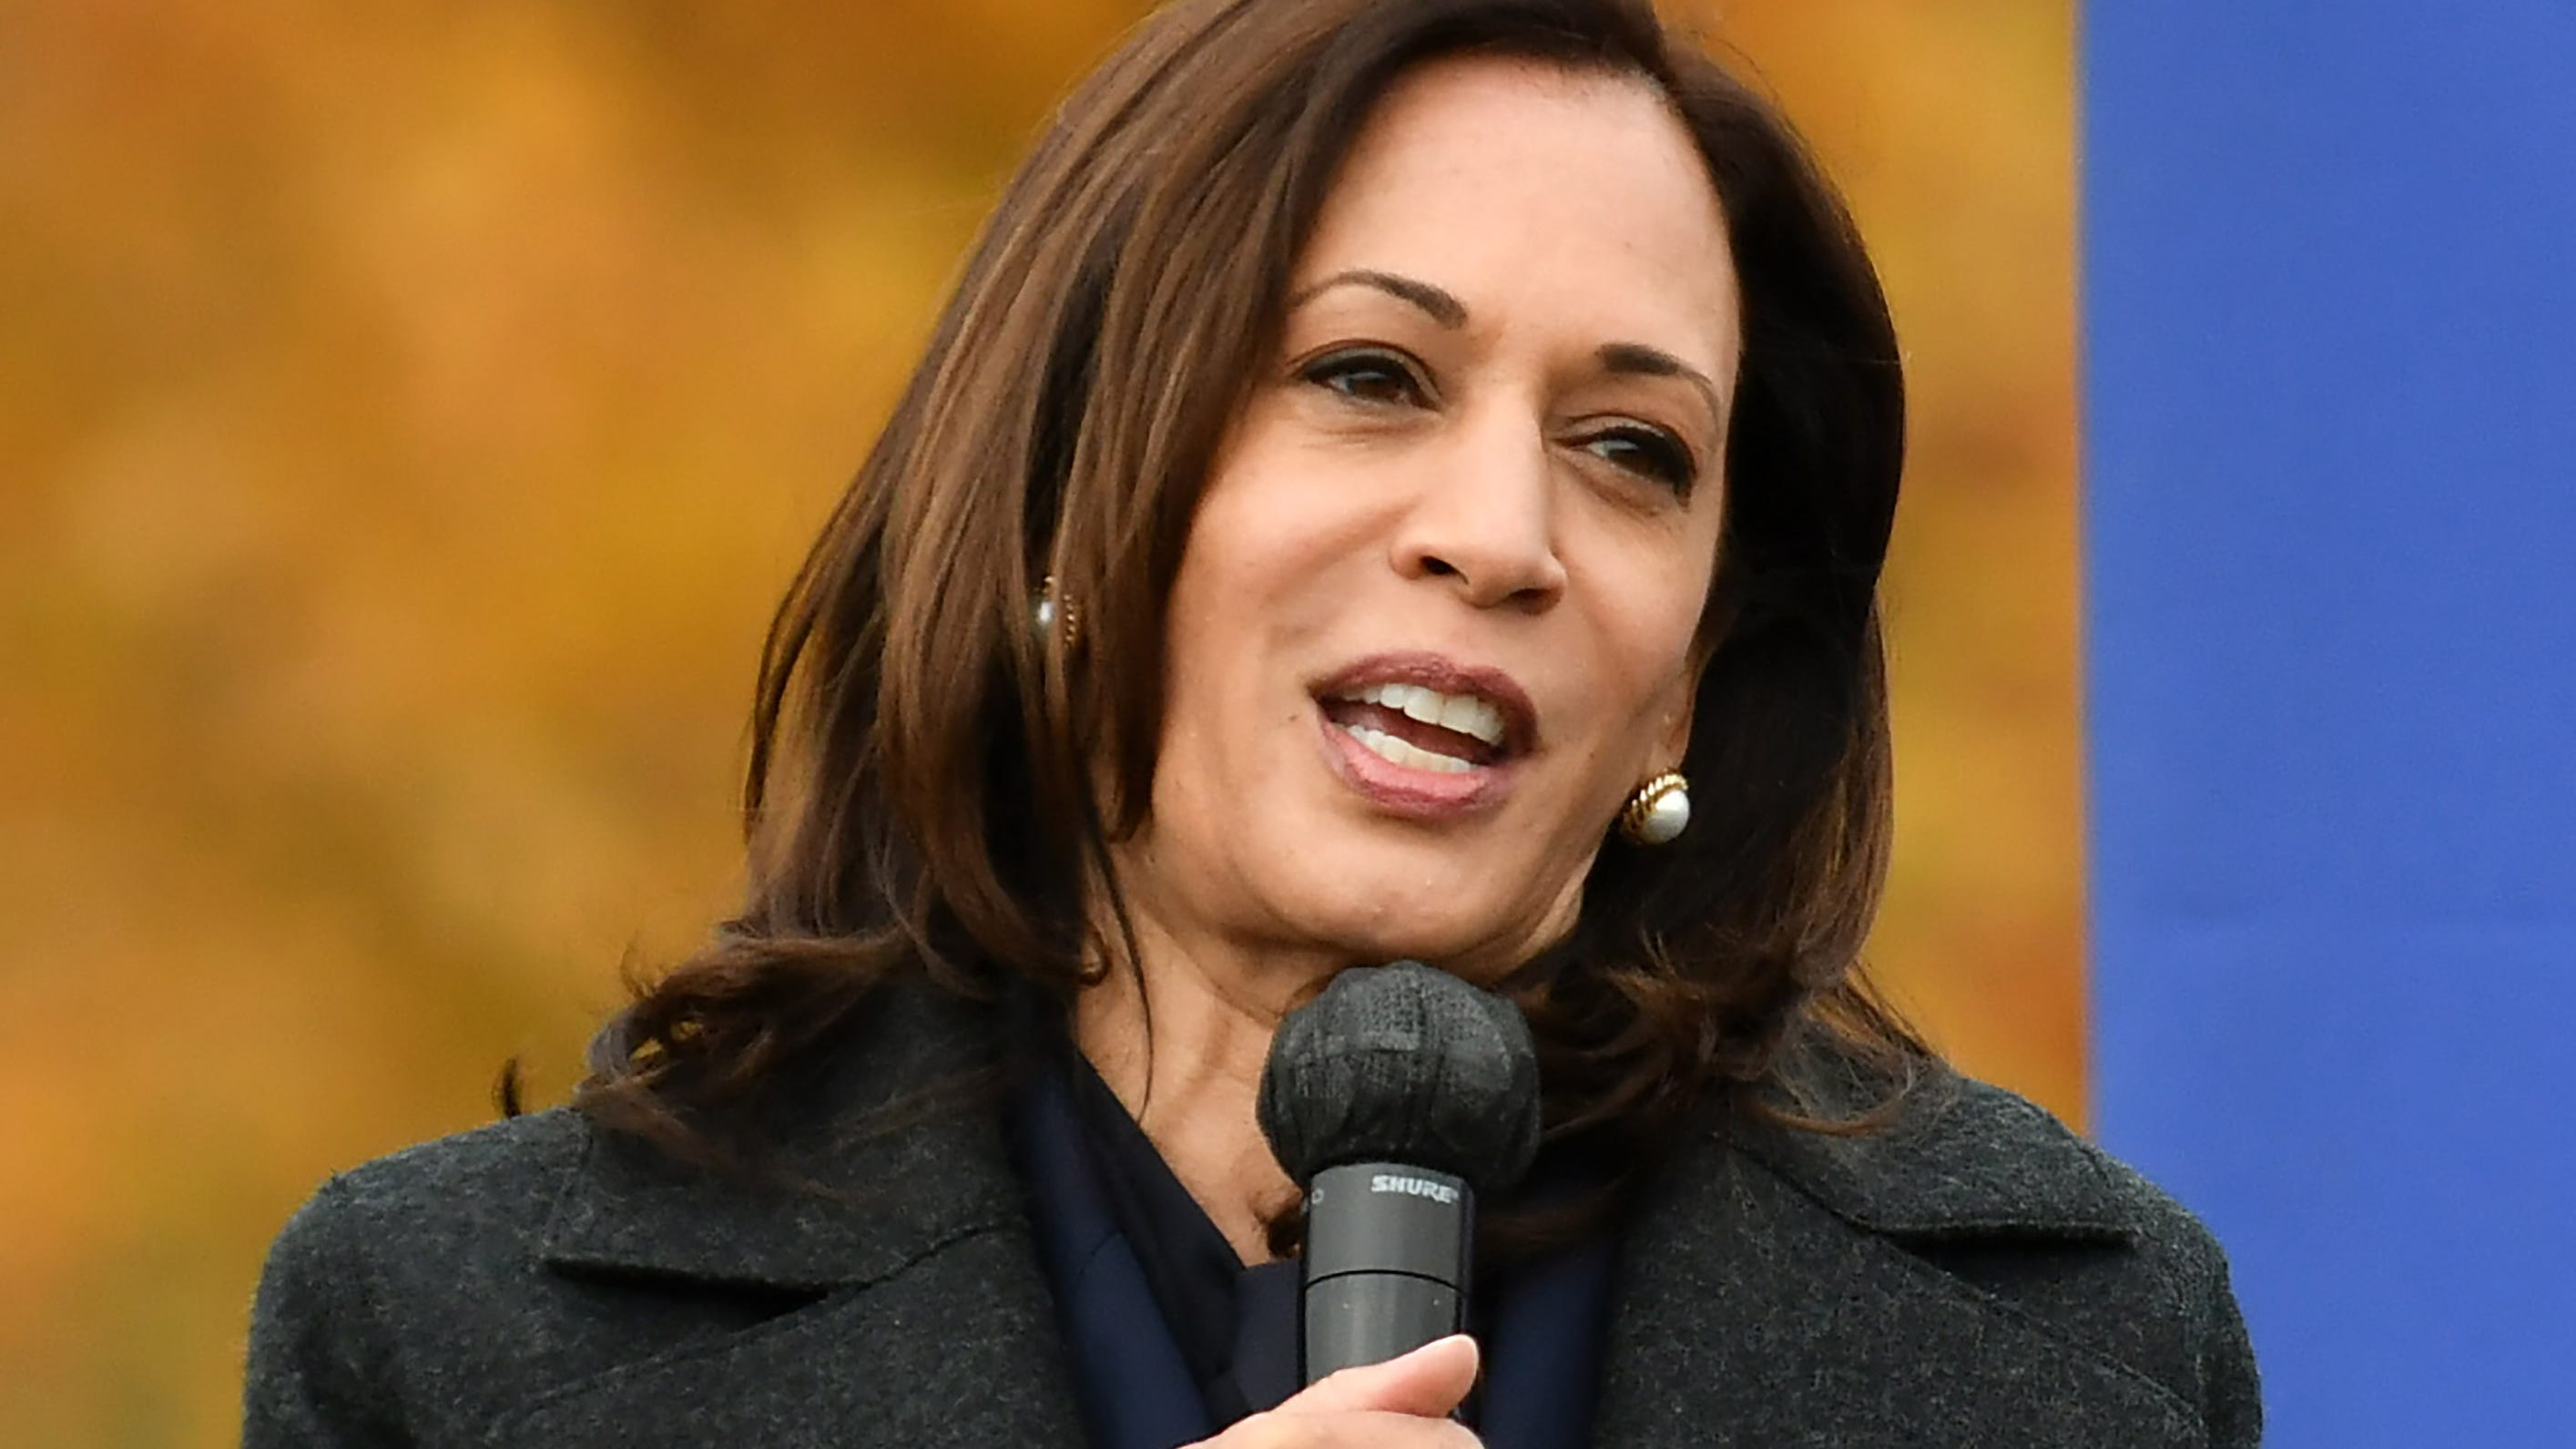 Democratic Vice President Kamala Harris will visit Detroit's TCF Center on Monday for events.